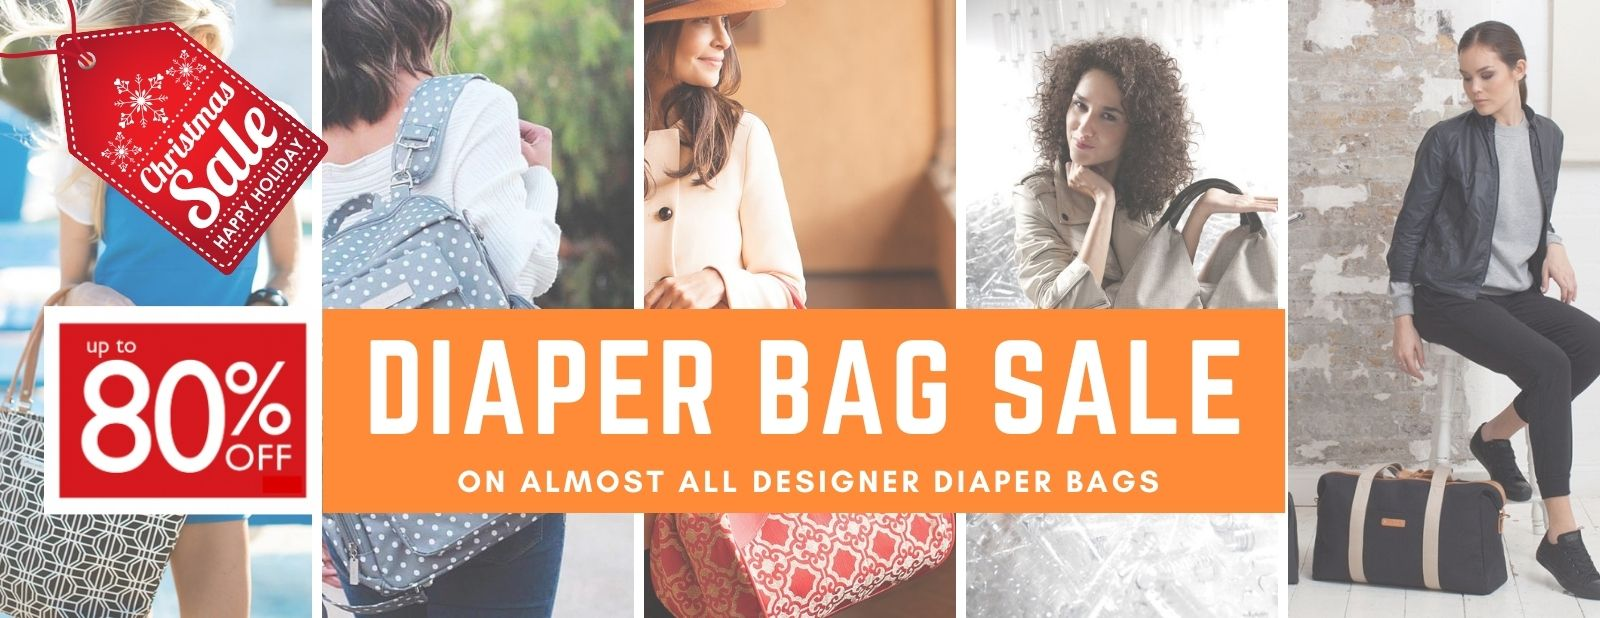 diaper bag black friday sale